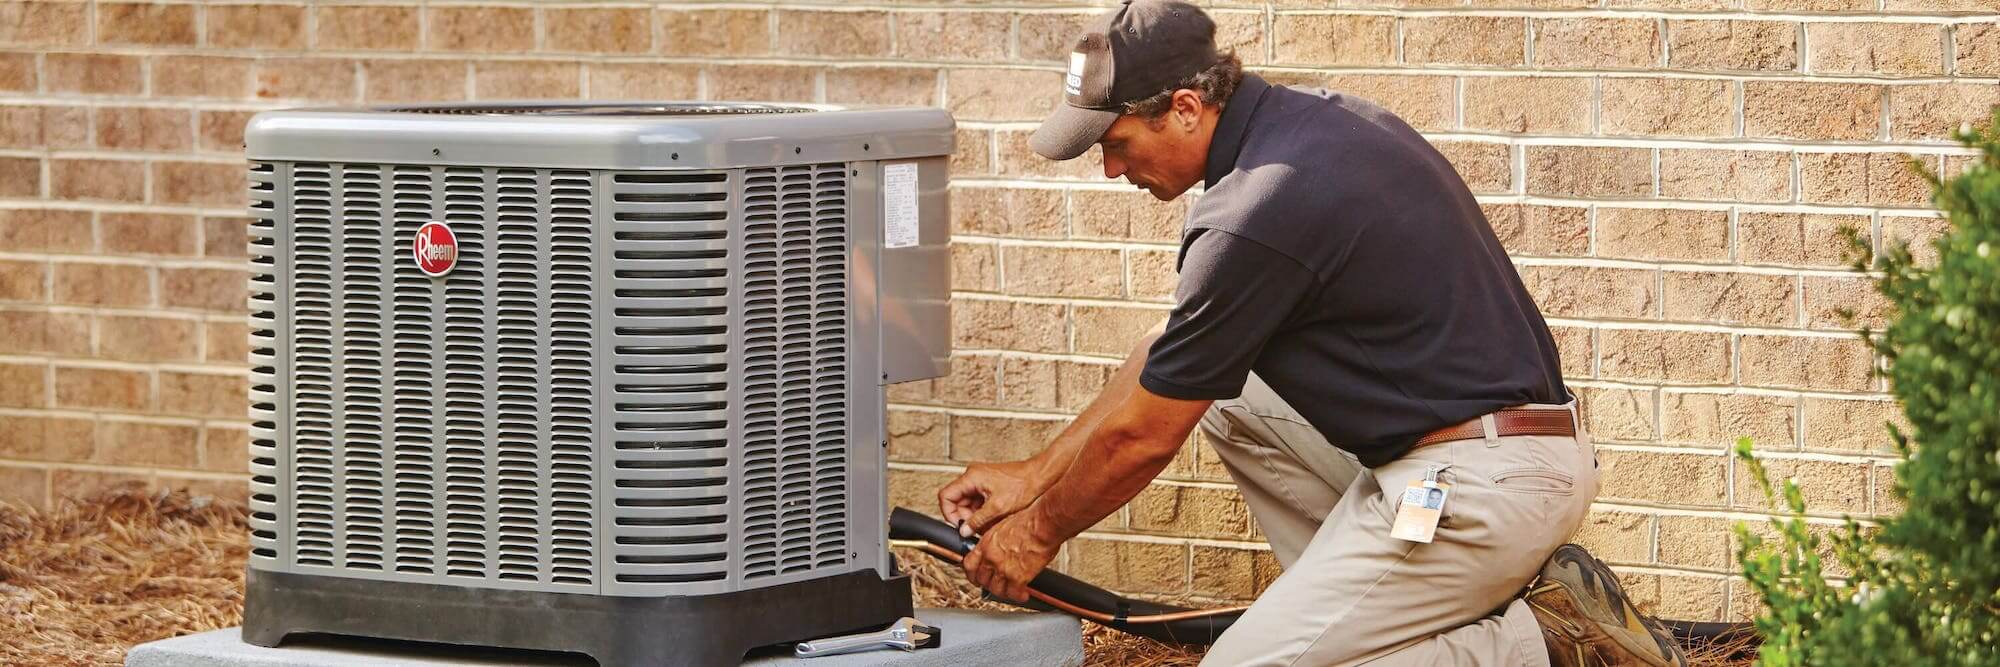 EASY HEATING & COOLING SYSTEM INSTALLATION